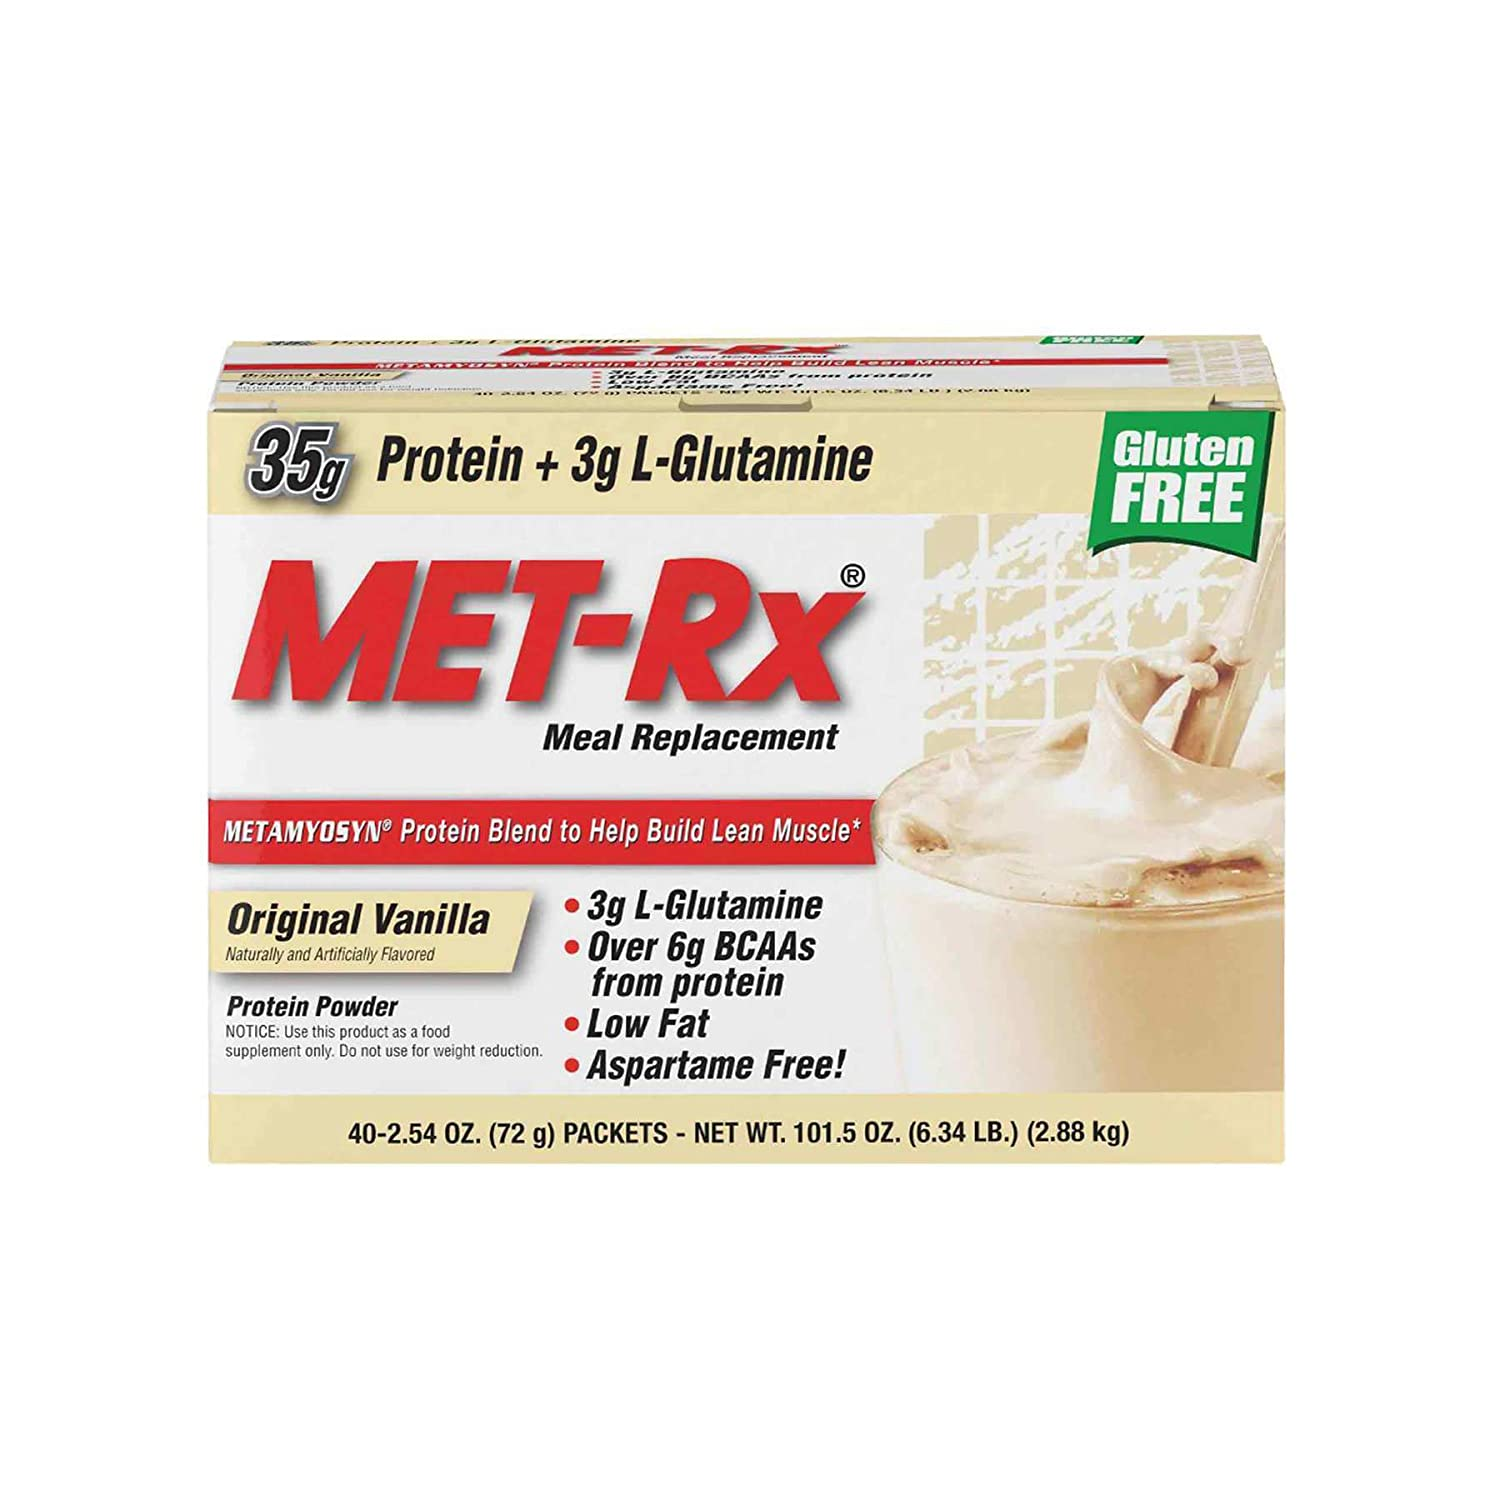 MET-Rx Original Whey Protein Powder, Great for Meal Replacement Shakes, Low Carb, Gluten Free, Original Vanilla, 2.54 oz. Packets, 40 Count